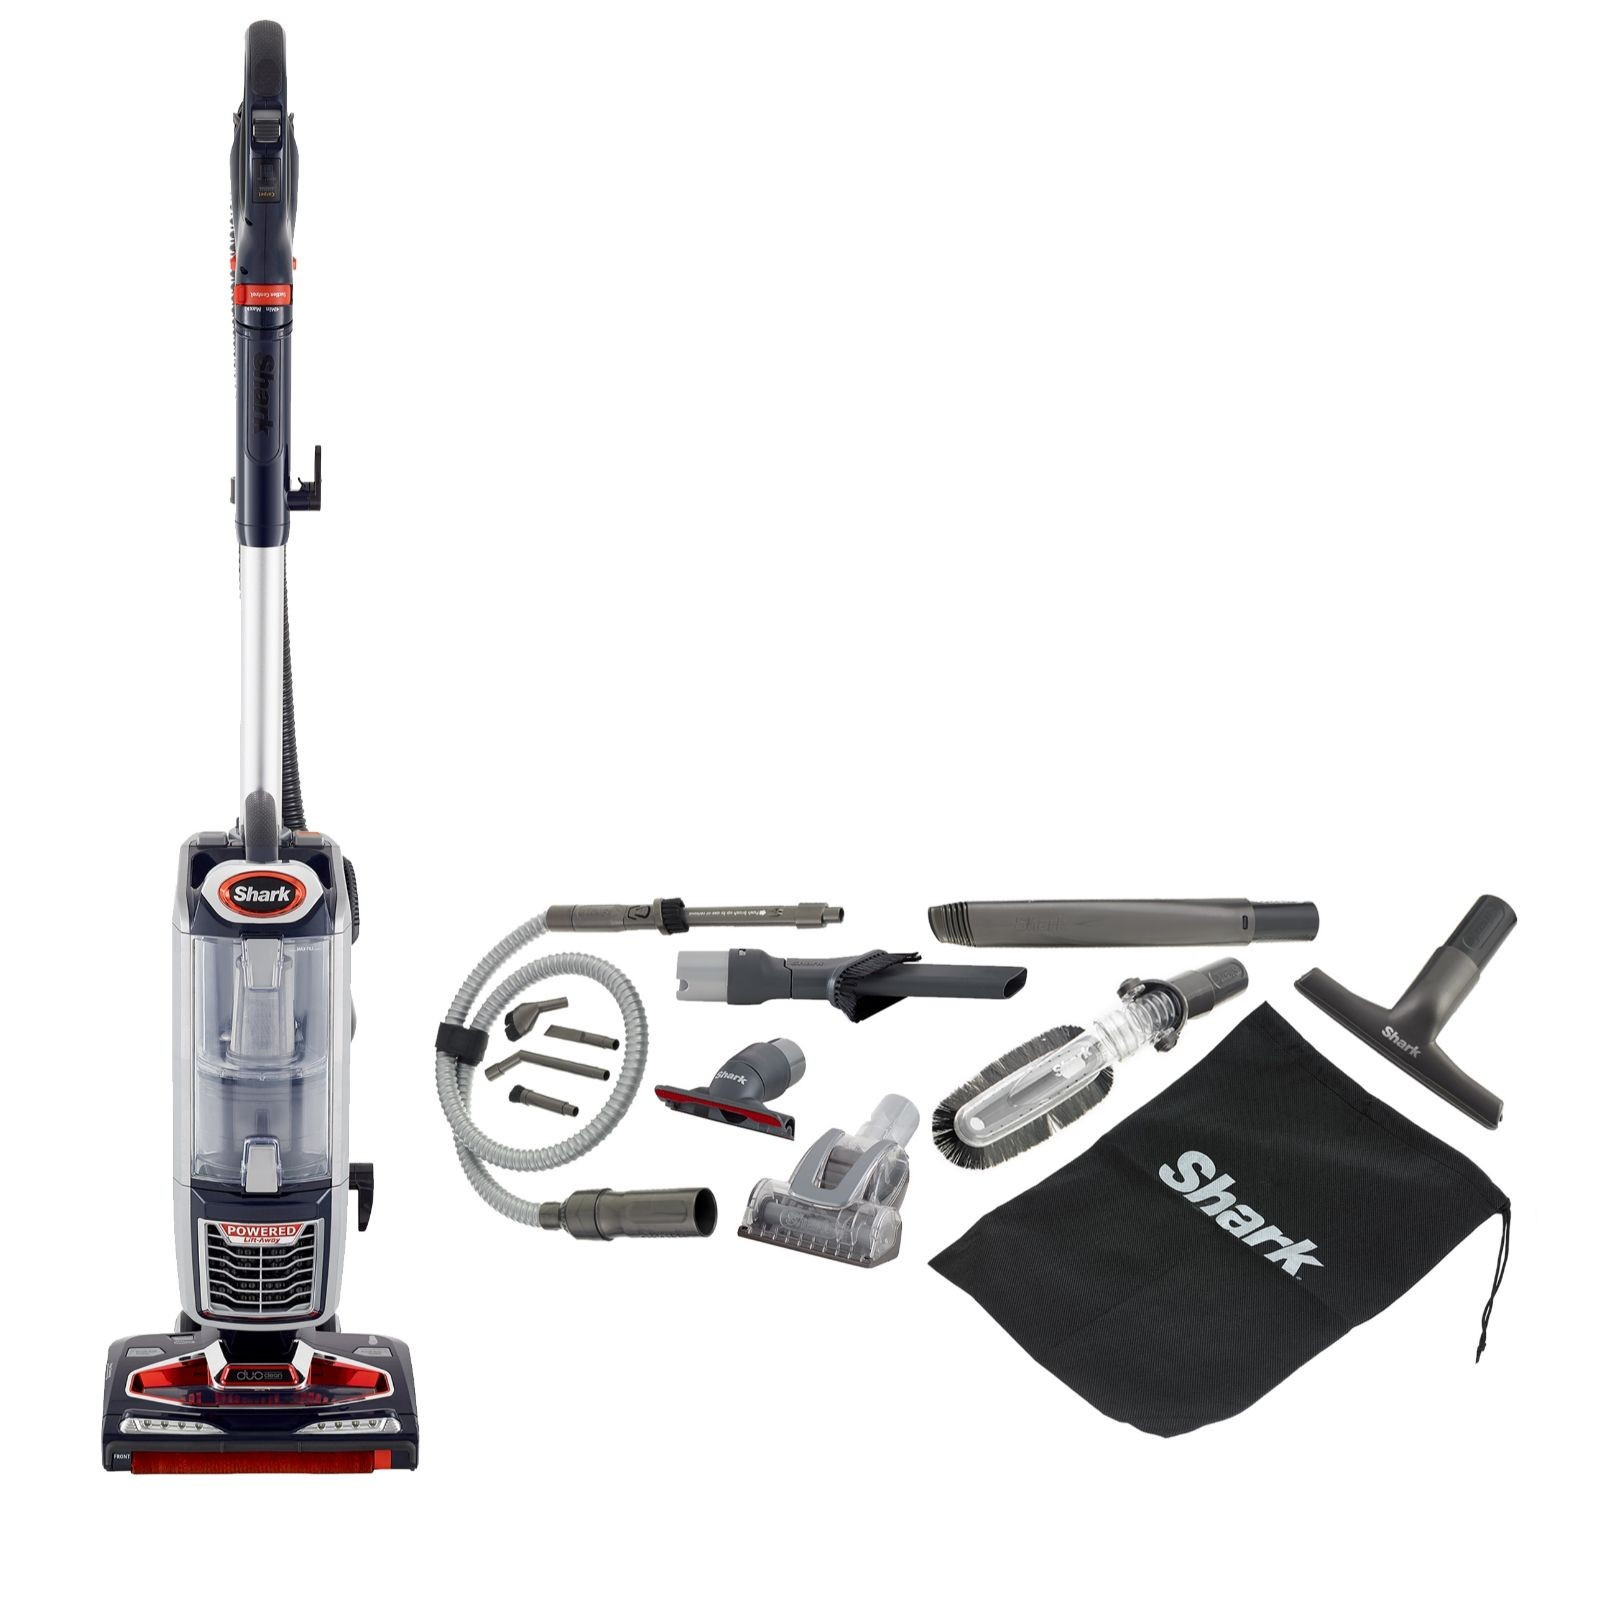 Carpet and Hardwood Floor Cleaning Service Of 17 Unique Shark Hardwood Floor Cleaner Photograph Dizpos Com for Shark Hardwood Floor Cleaner Best Of Shark Duoclean Powered Lift Away True Pet Vacuum Cleaner with